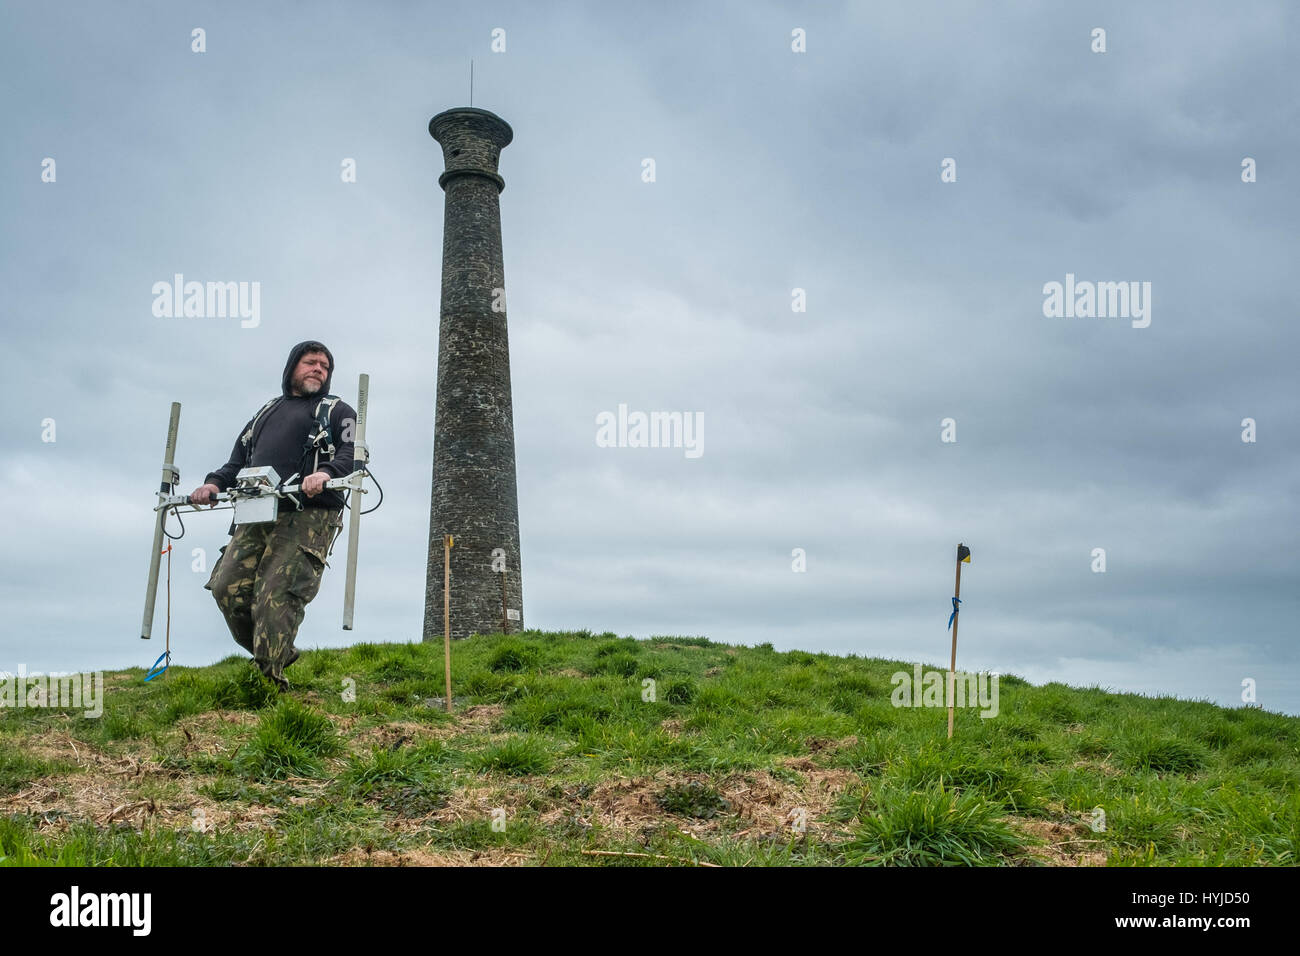 Aberystwyth Wales UK, Wednesday 05 April 2017   Archaeology in the UK : In the shadow of the distinctive shape of - Stock Image